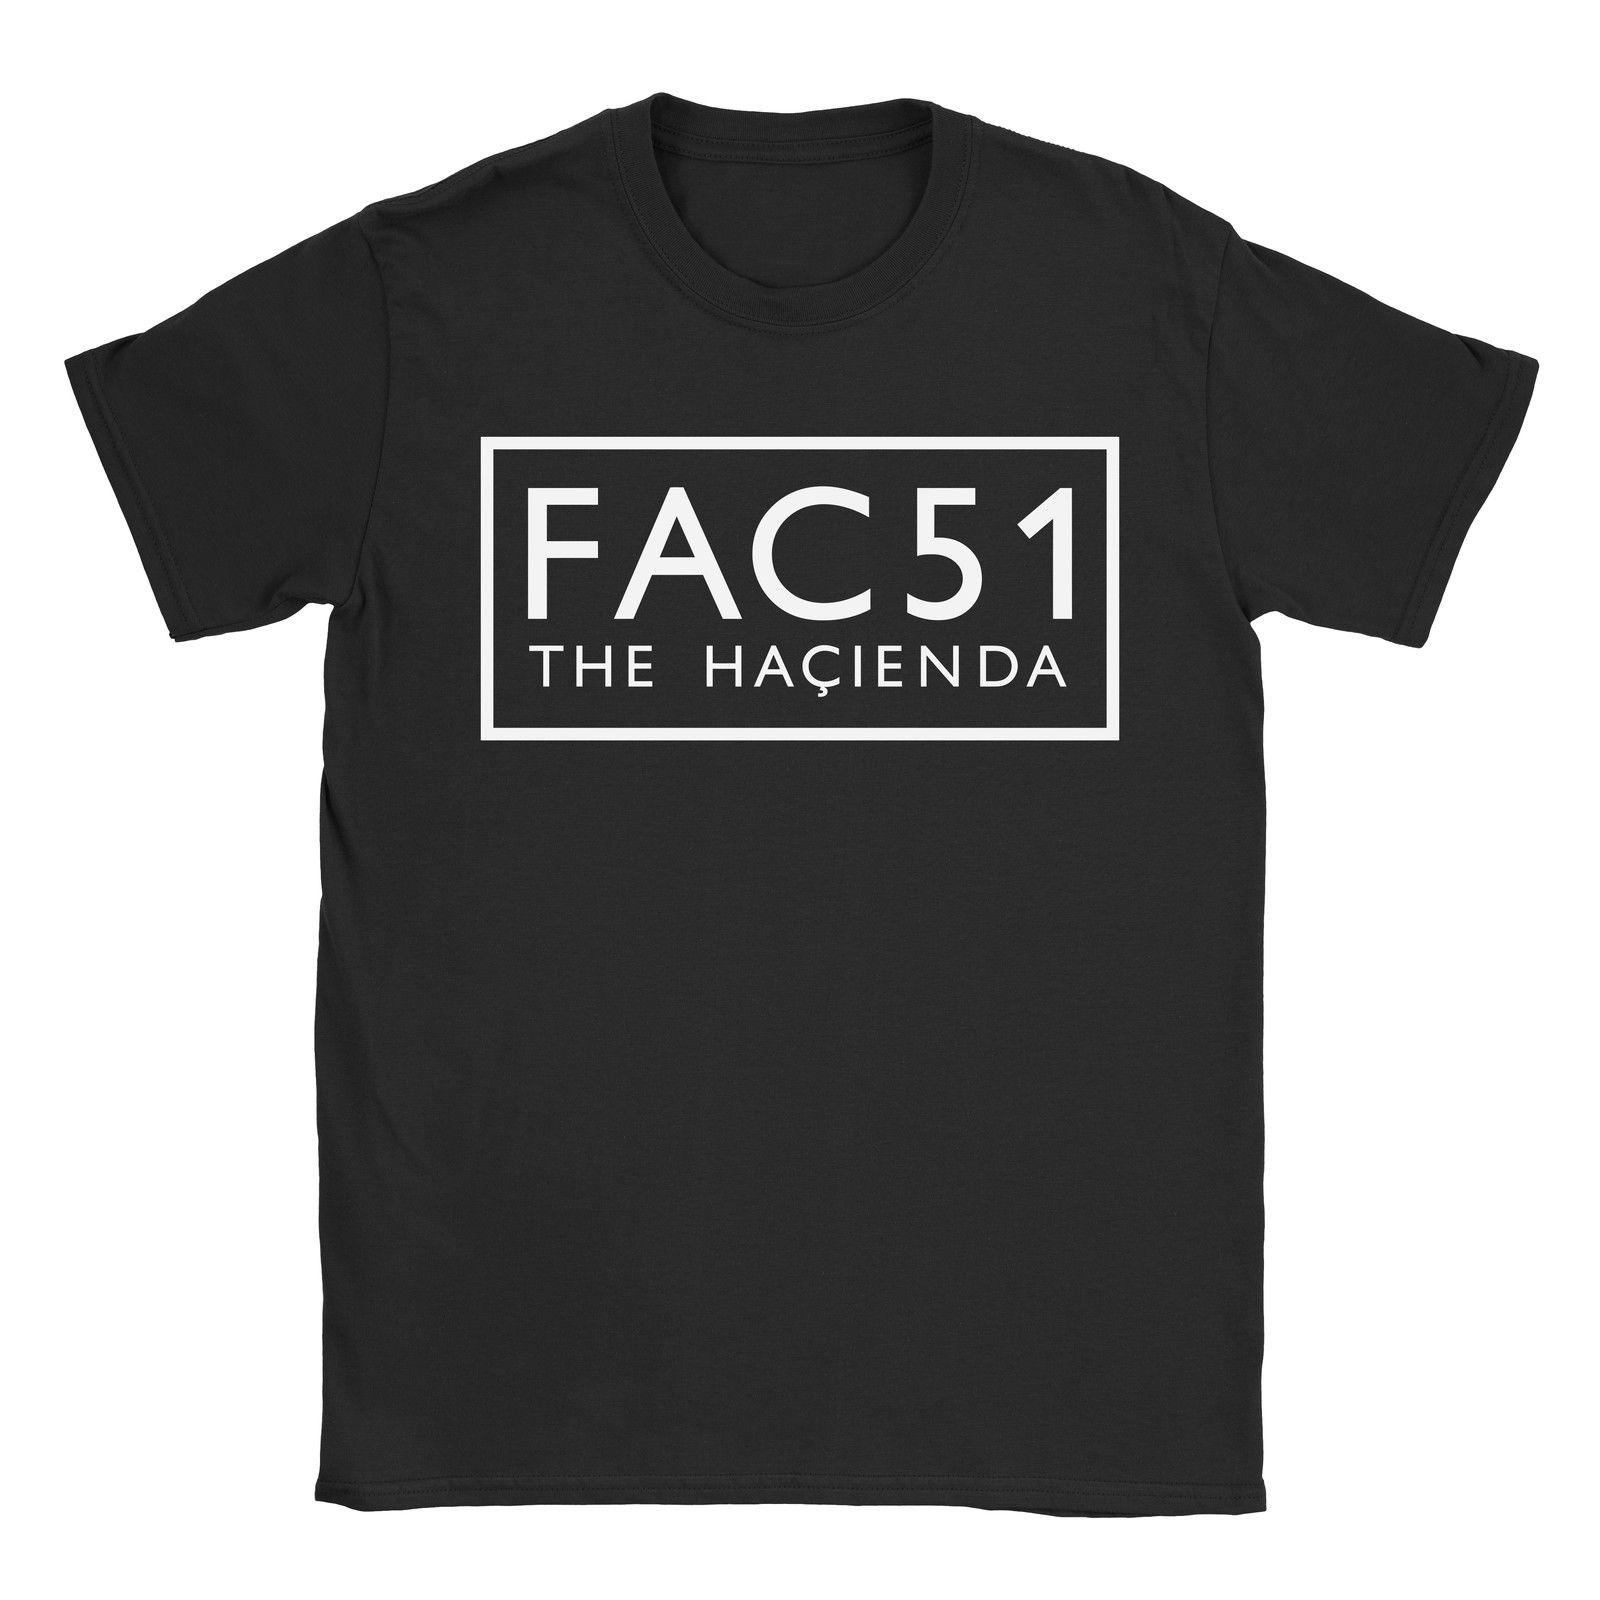 FAC51 Womens T-Shirt Factory Records Hacienda Stone Roses Happy Mondays